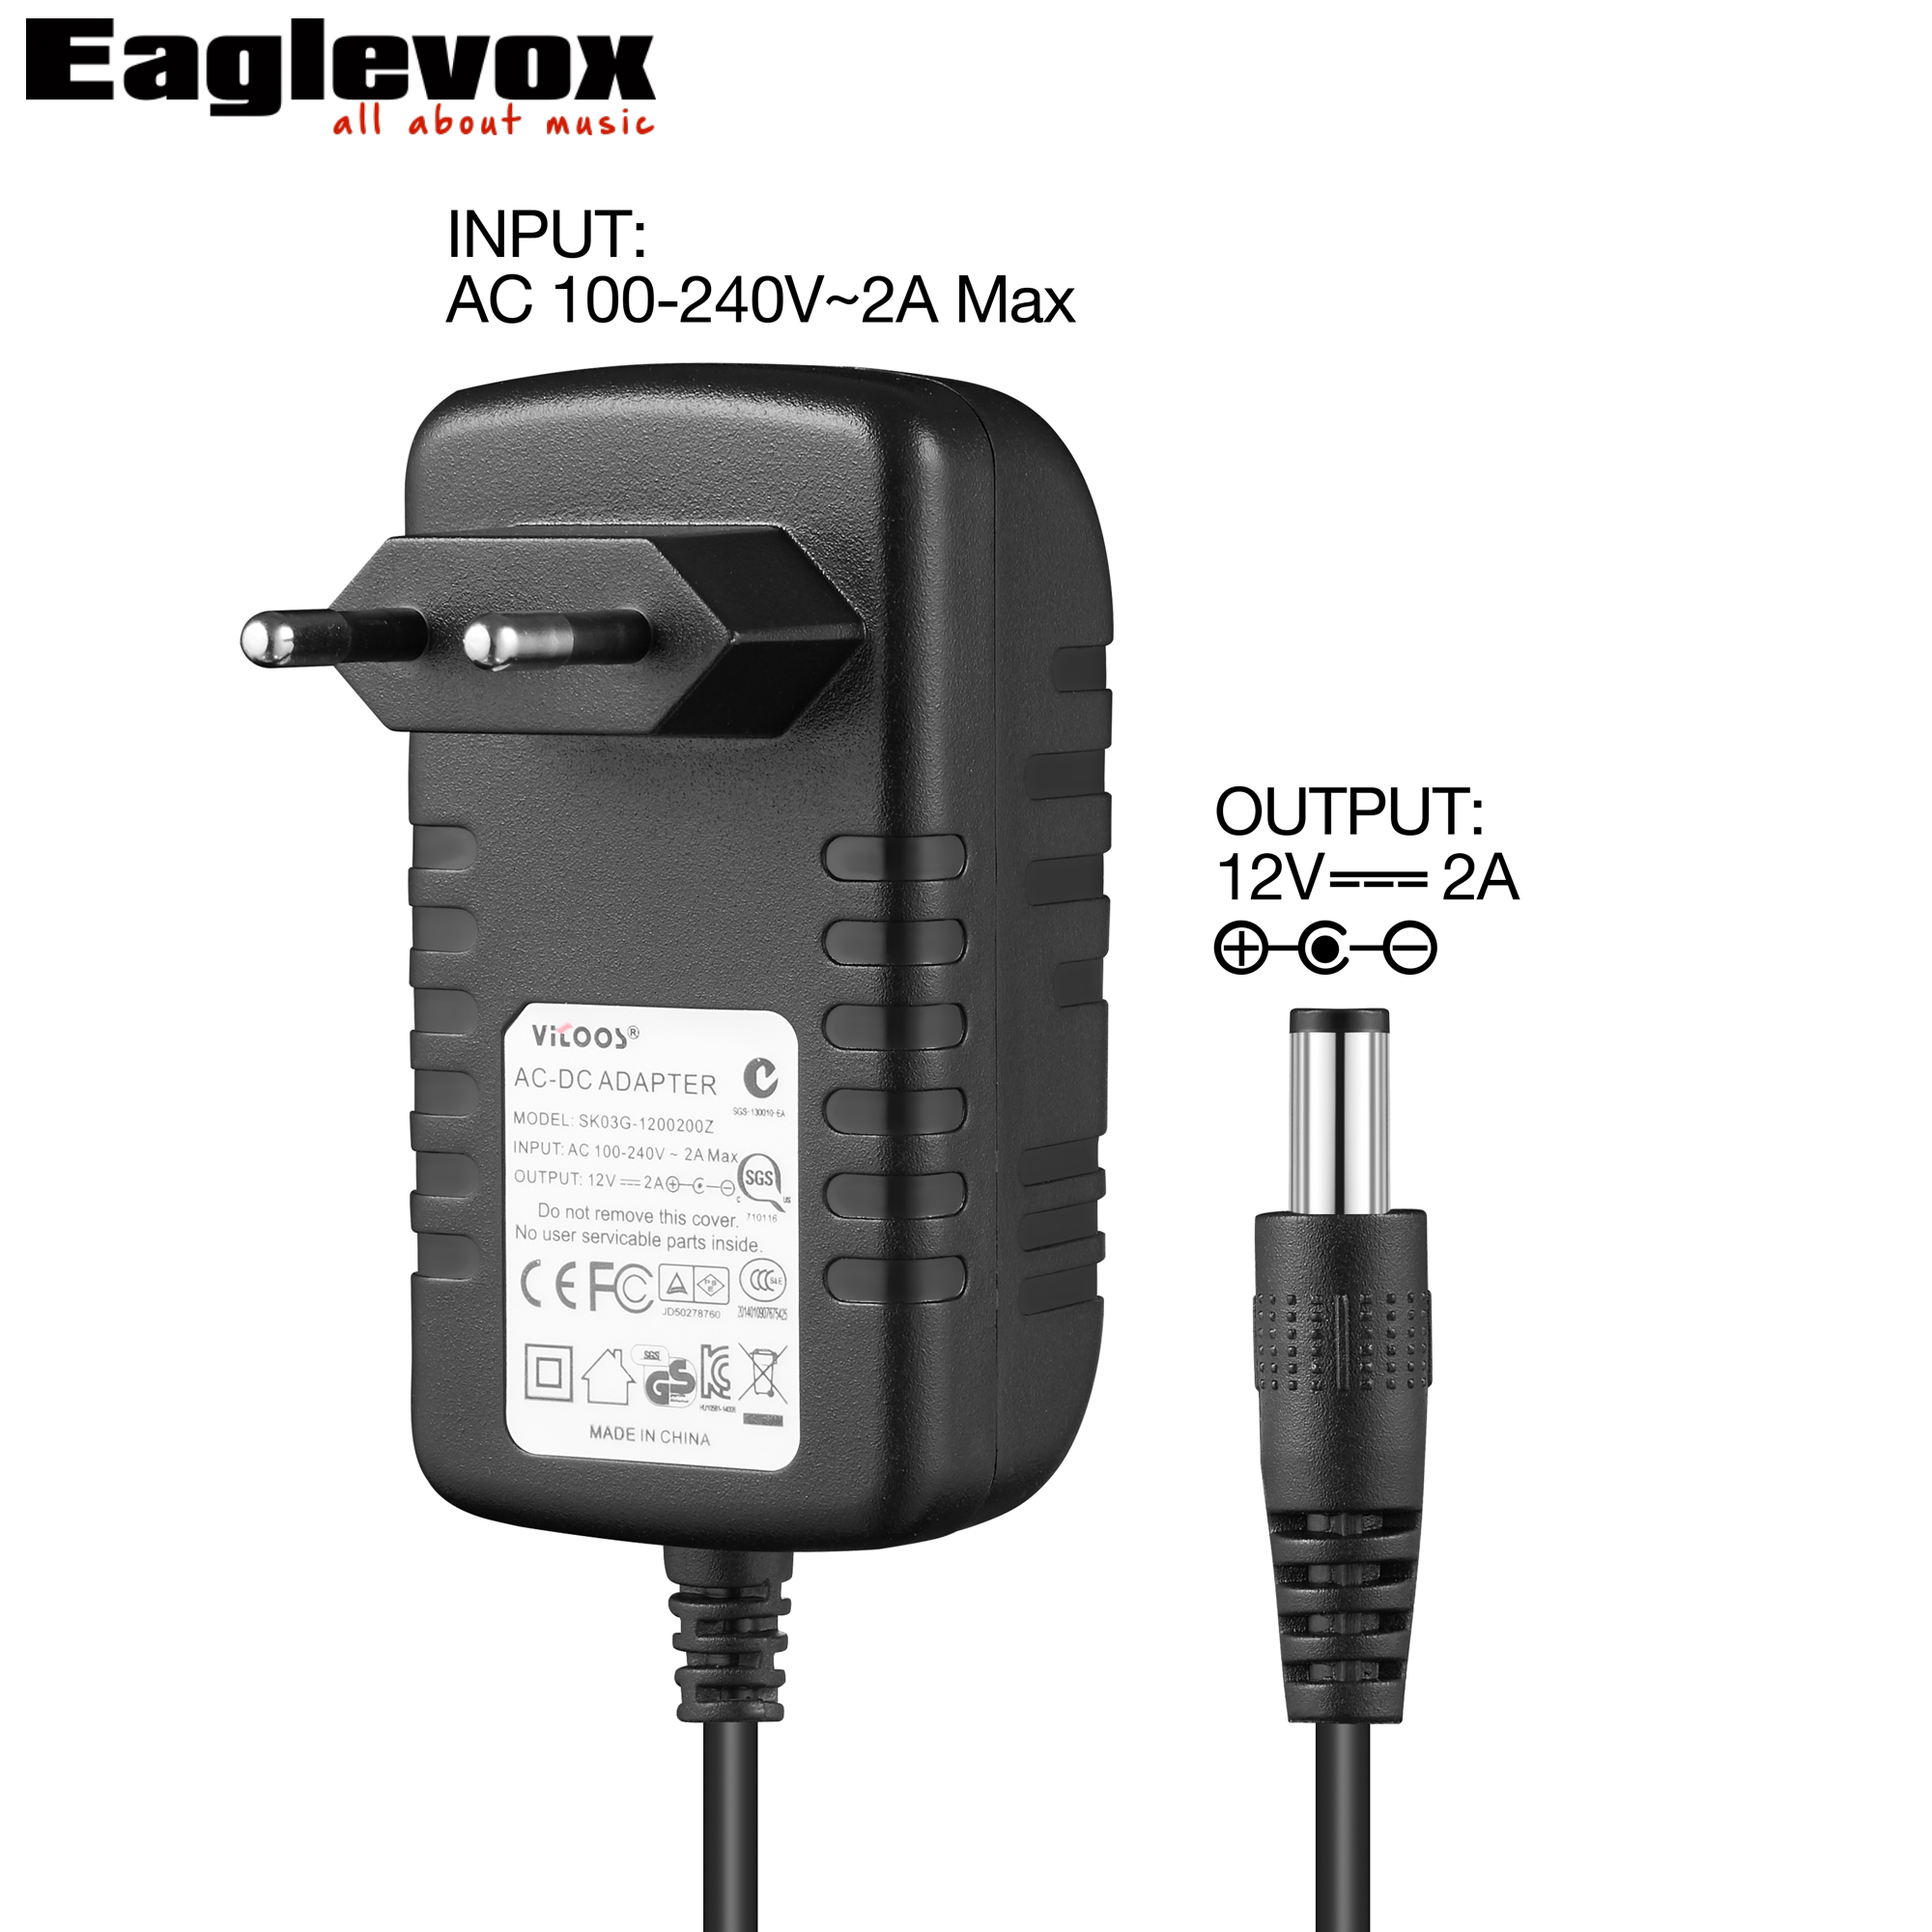 12V 2A Power Adapter Negative Center 100-240V Converter Noiseless Technology for Guitar Effect Pedal AU Plug I Type Power Supply alctron ilink 2 guitar audio interface converter smart phone effect with amplification effect